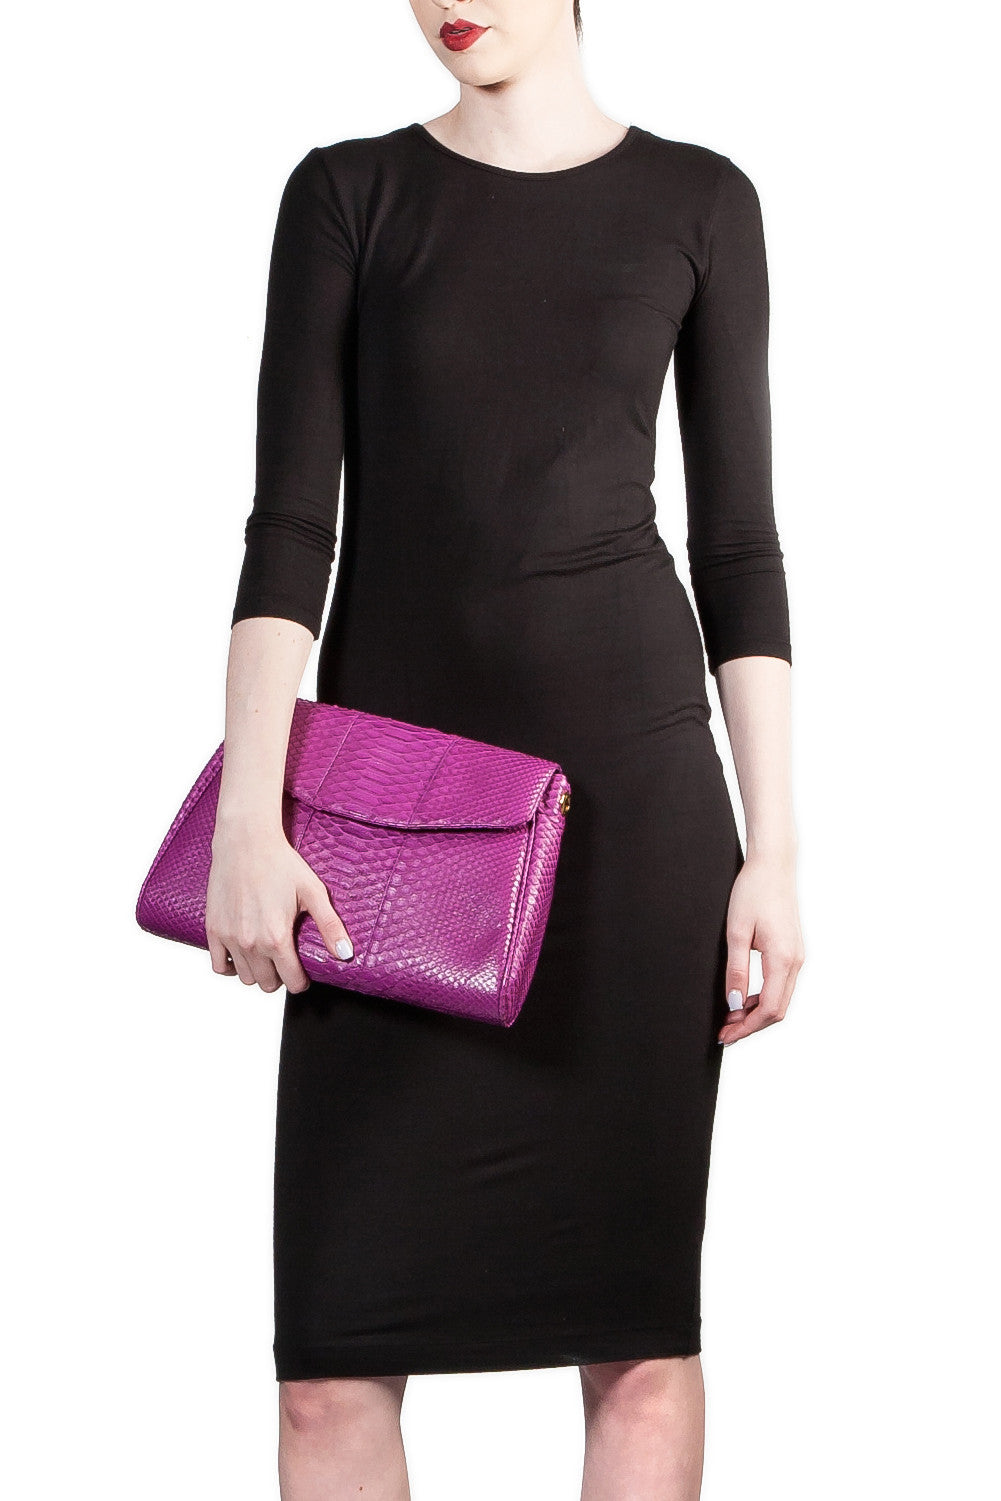 Magenta 'Coco' Small Shoulder Bag - Python | Mel Boteri | Clutch View